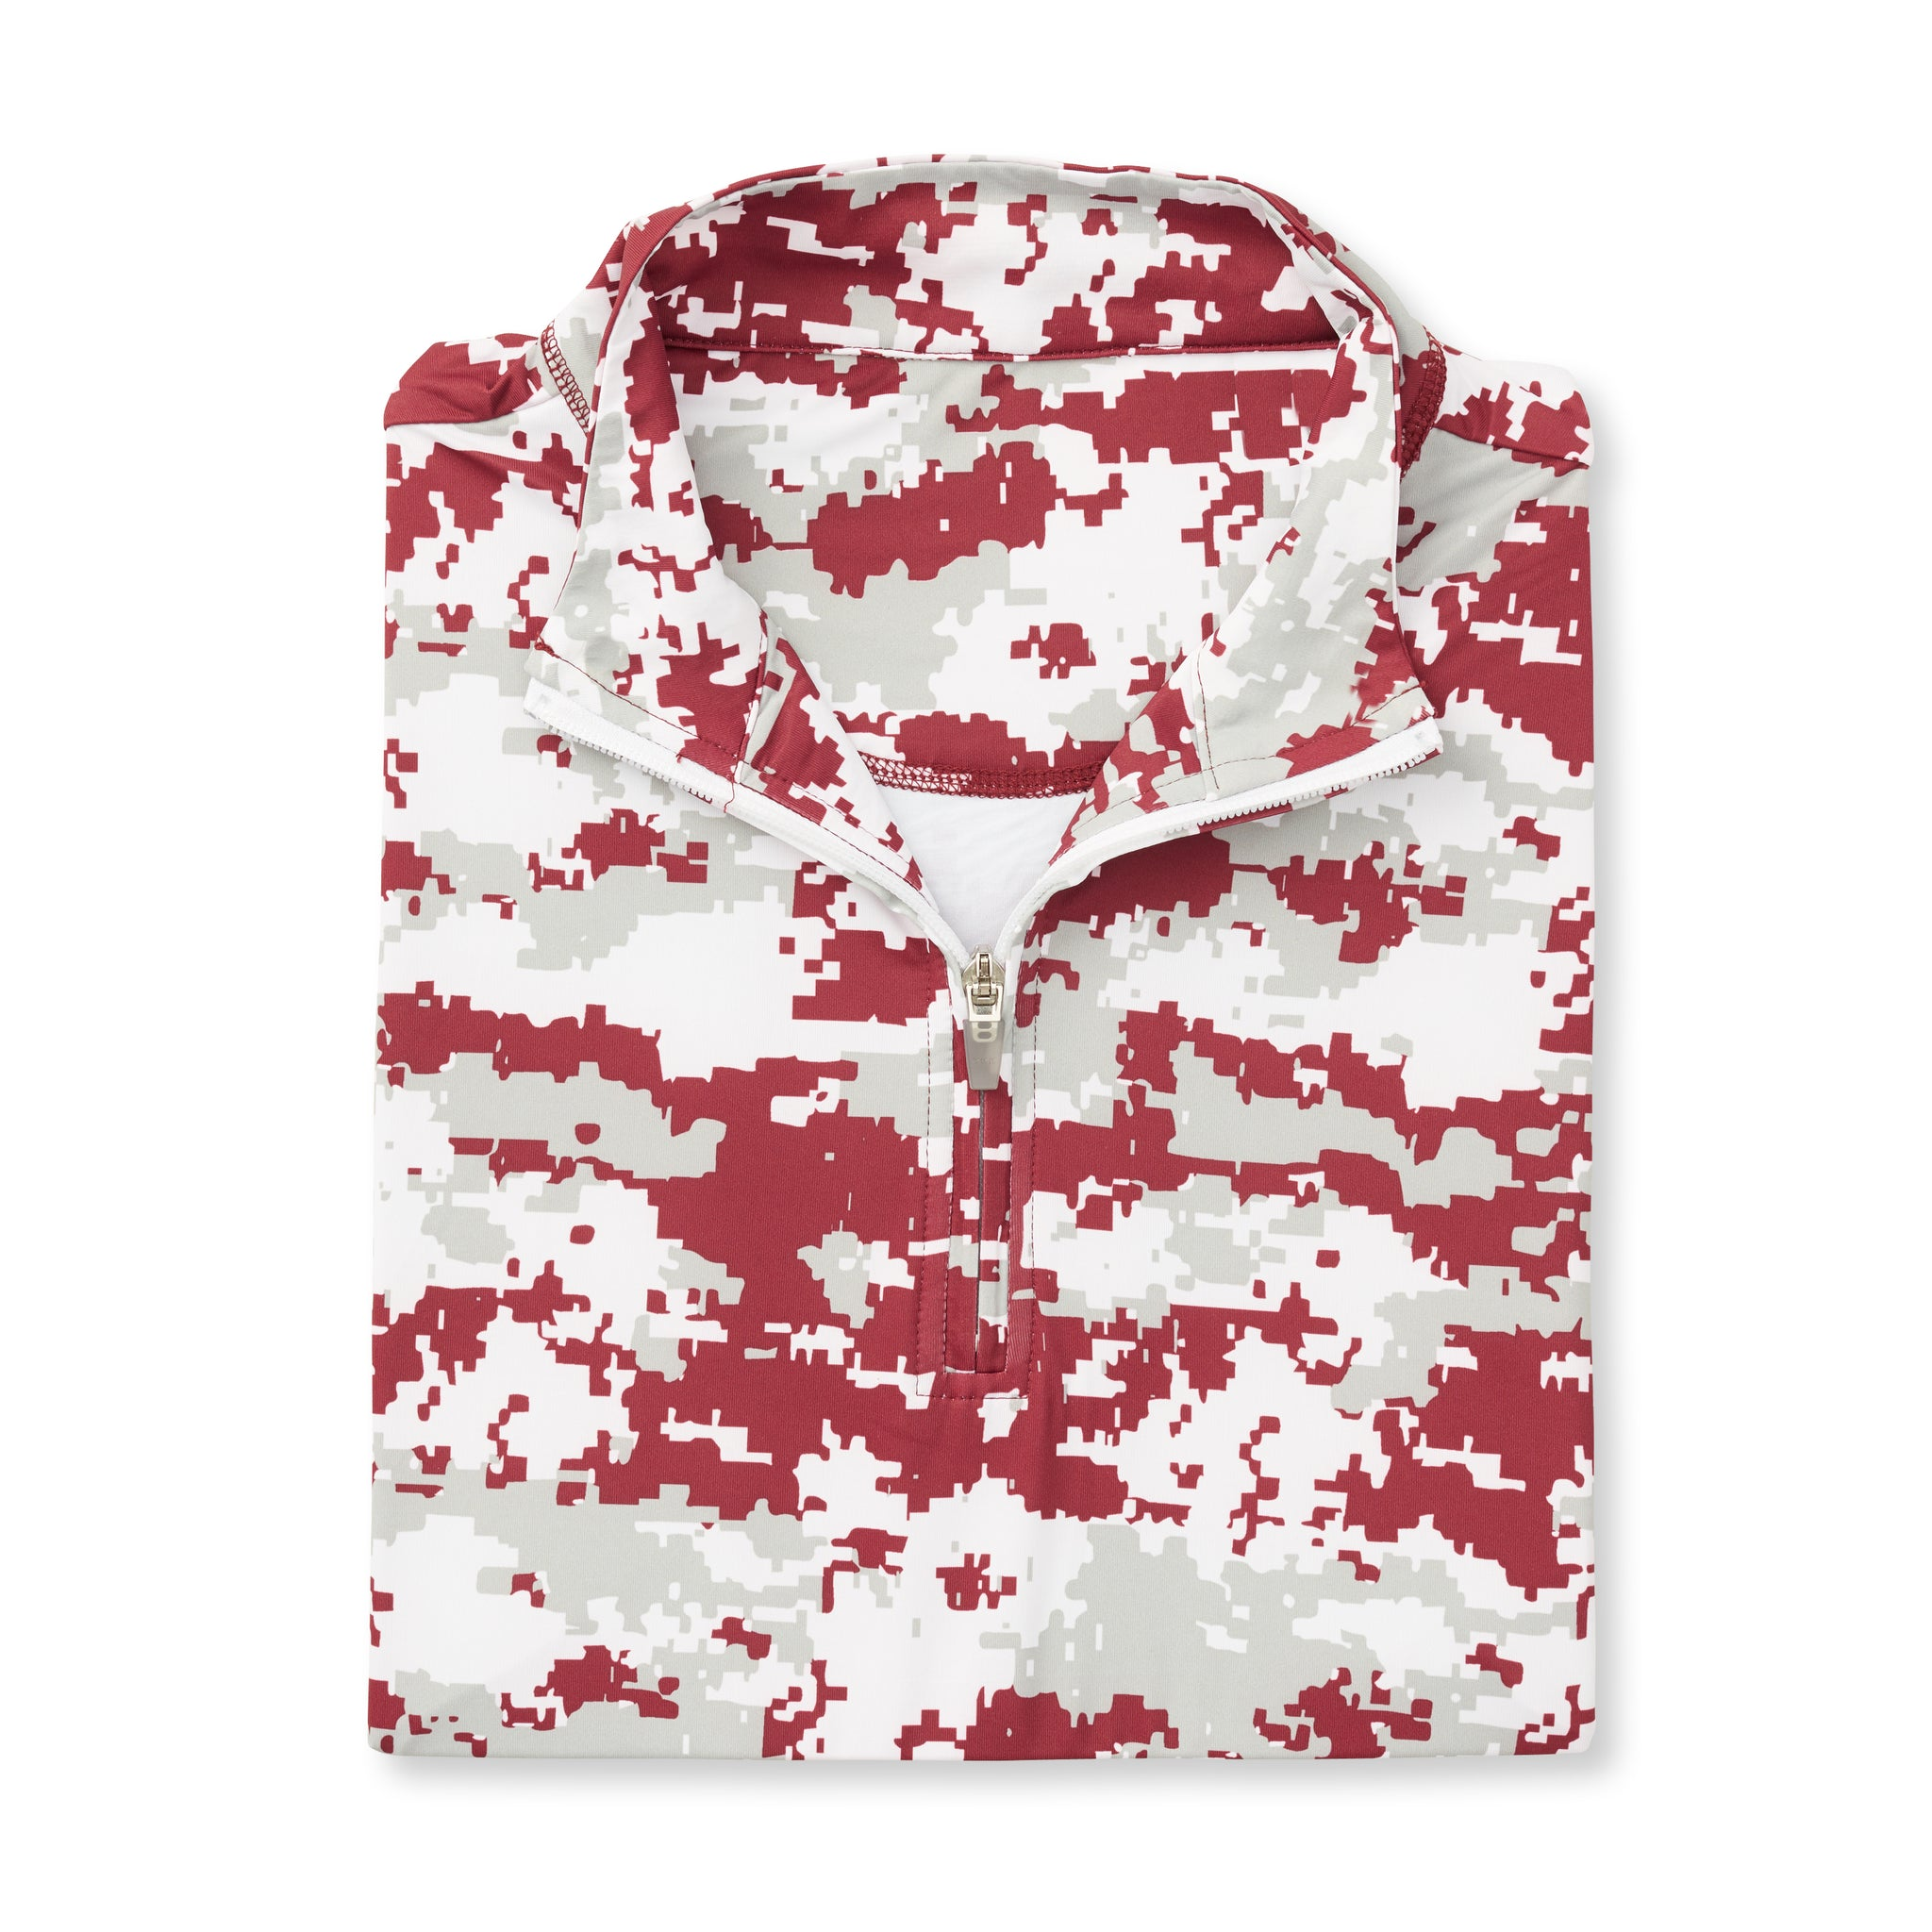 THE PULIDO DIGITAL CAMO HALF ZIP PULLOVER - Merlot IS46005